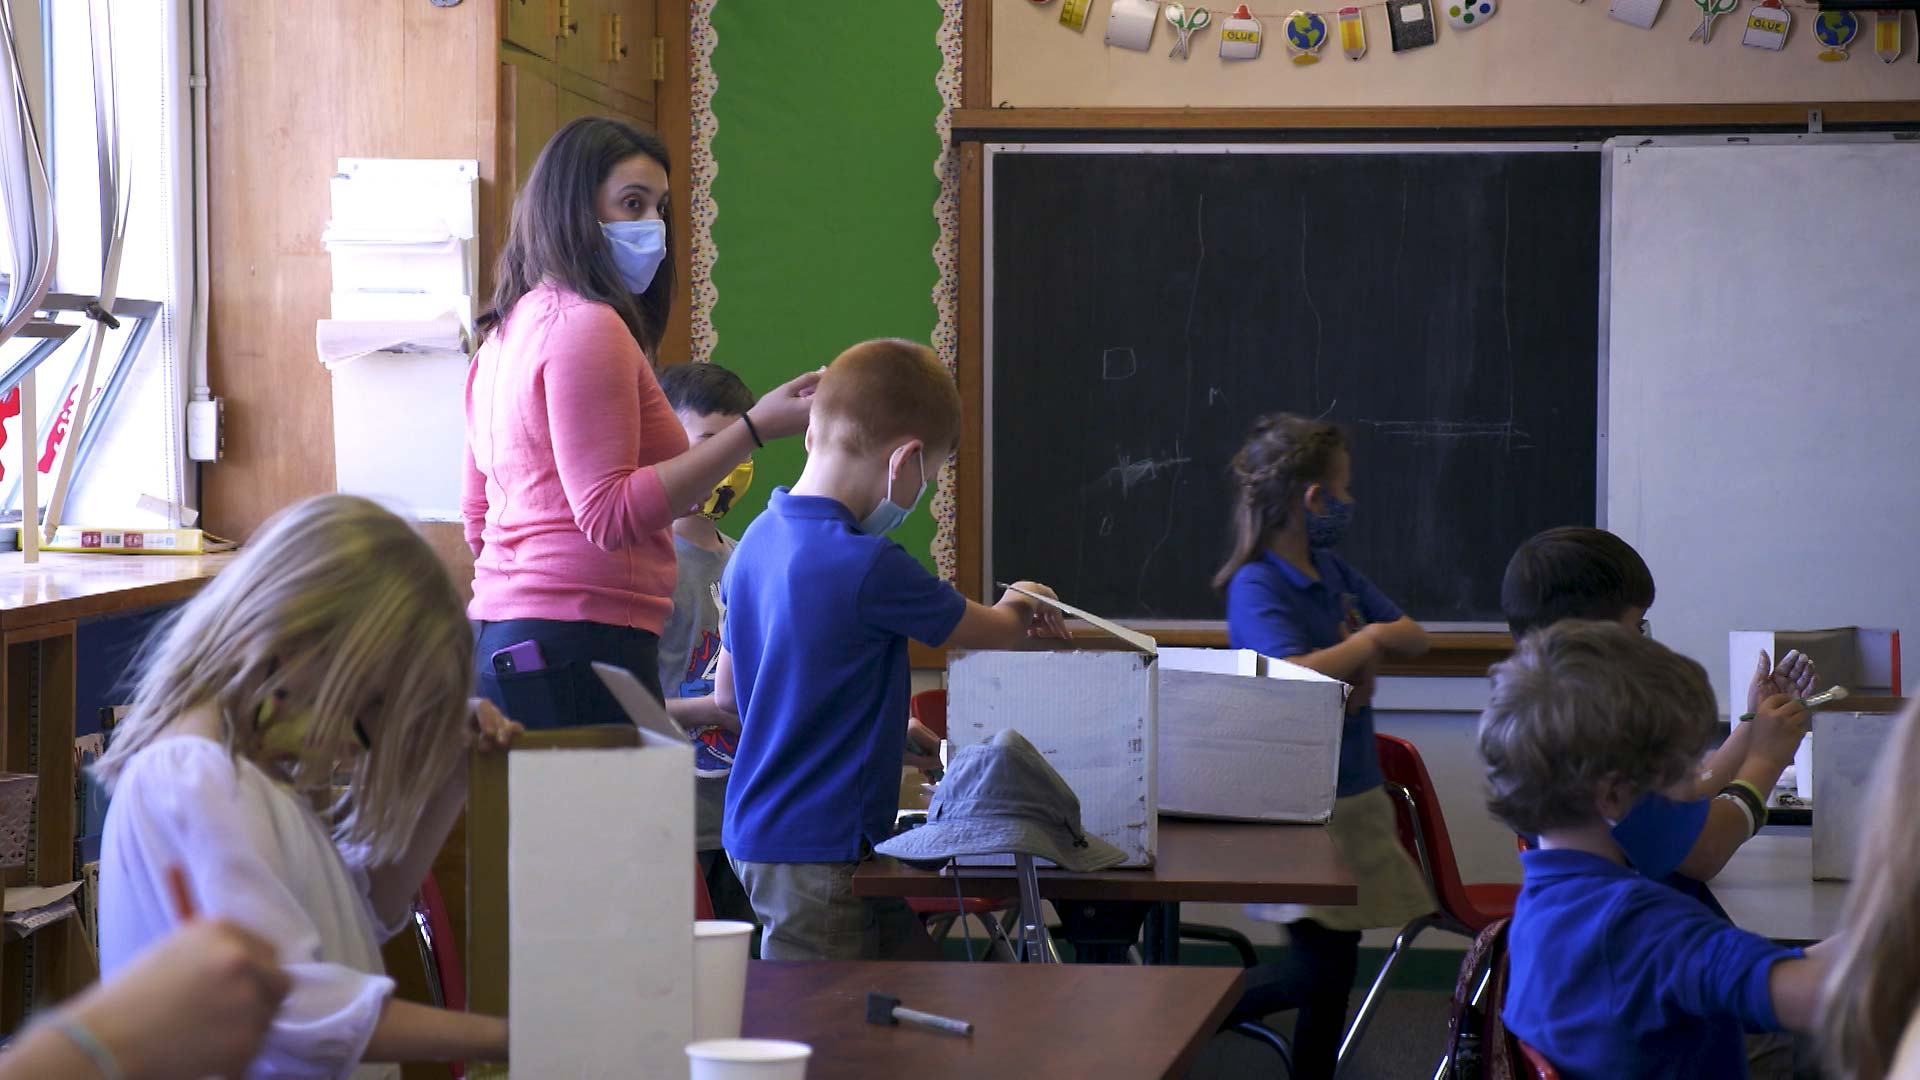 A teacher and students all wear masks while in the classroom at the International School of Tucson. February 2021.